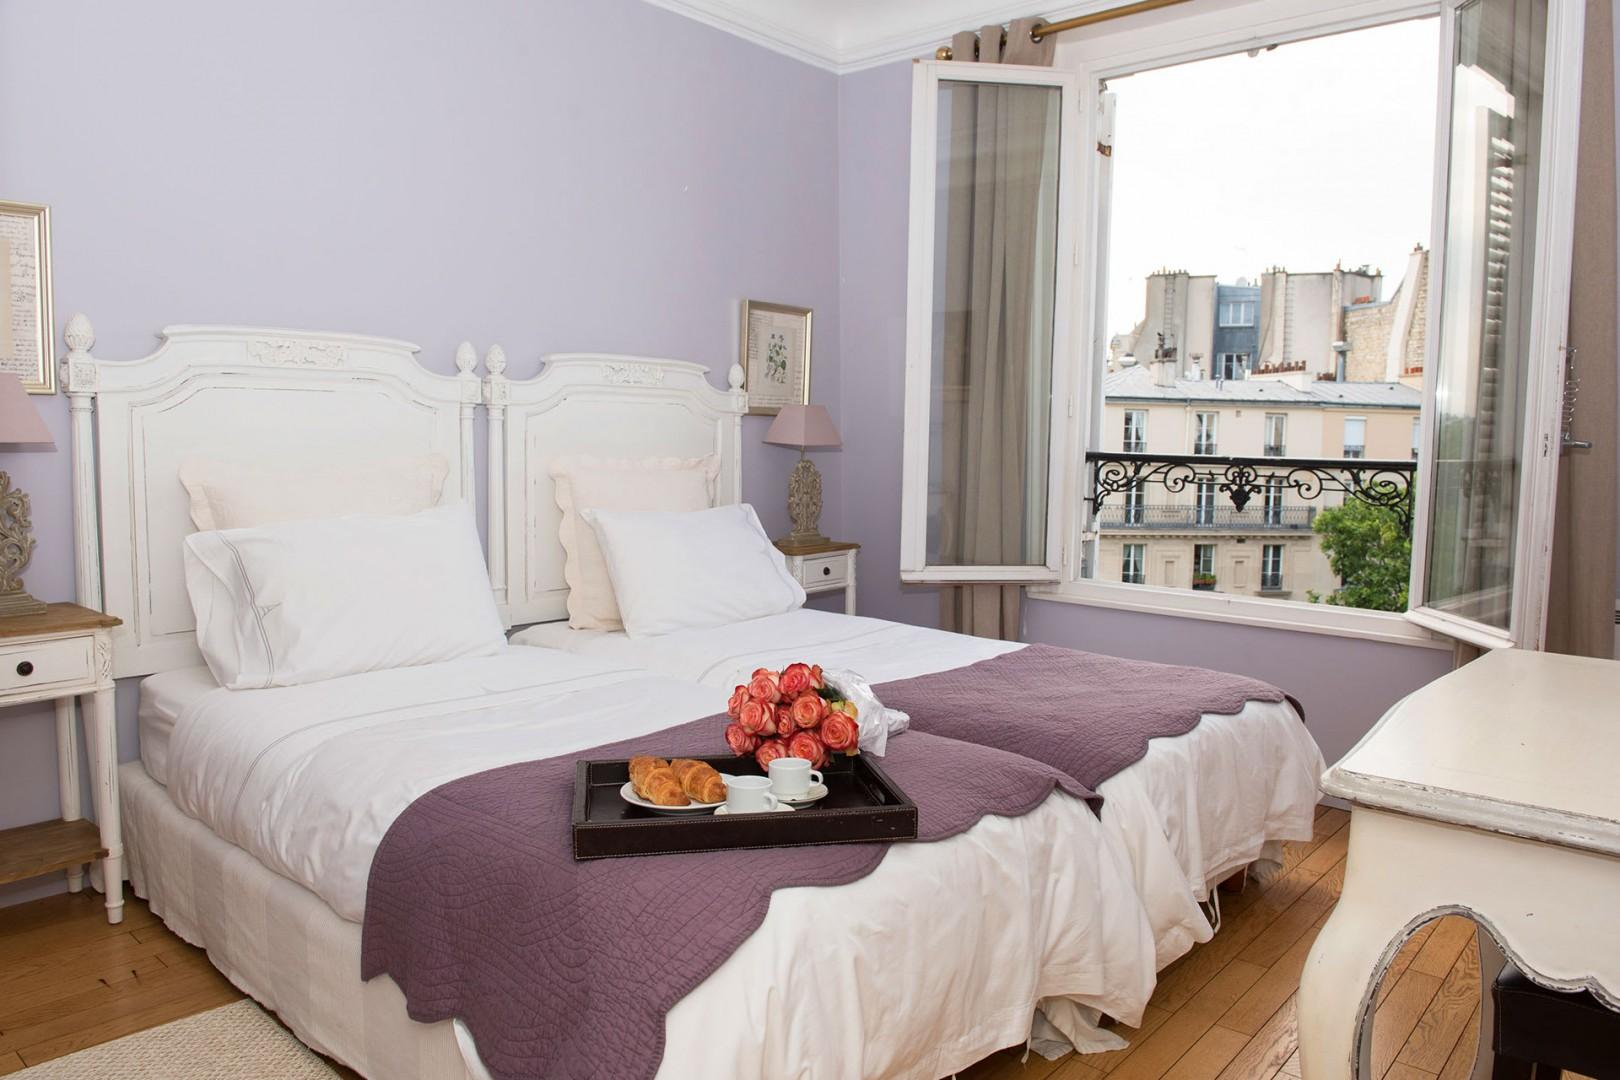 Bedroom 2 has comfy beds and Eiffel Tower views.